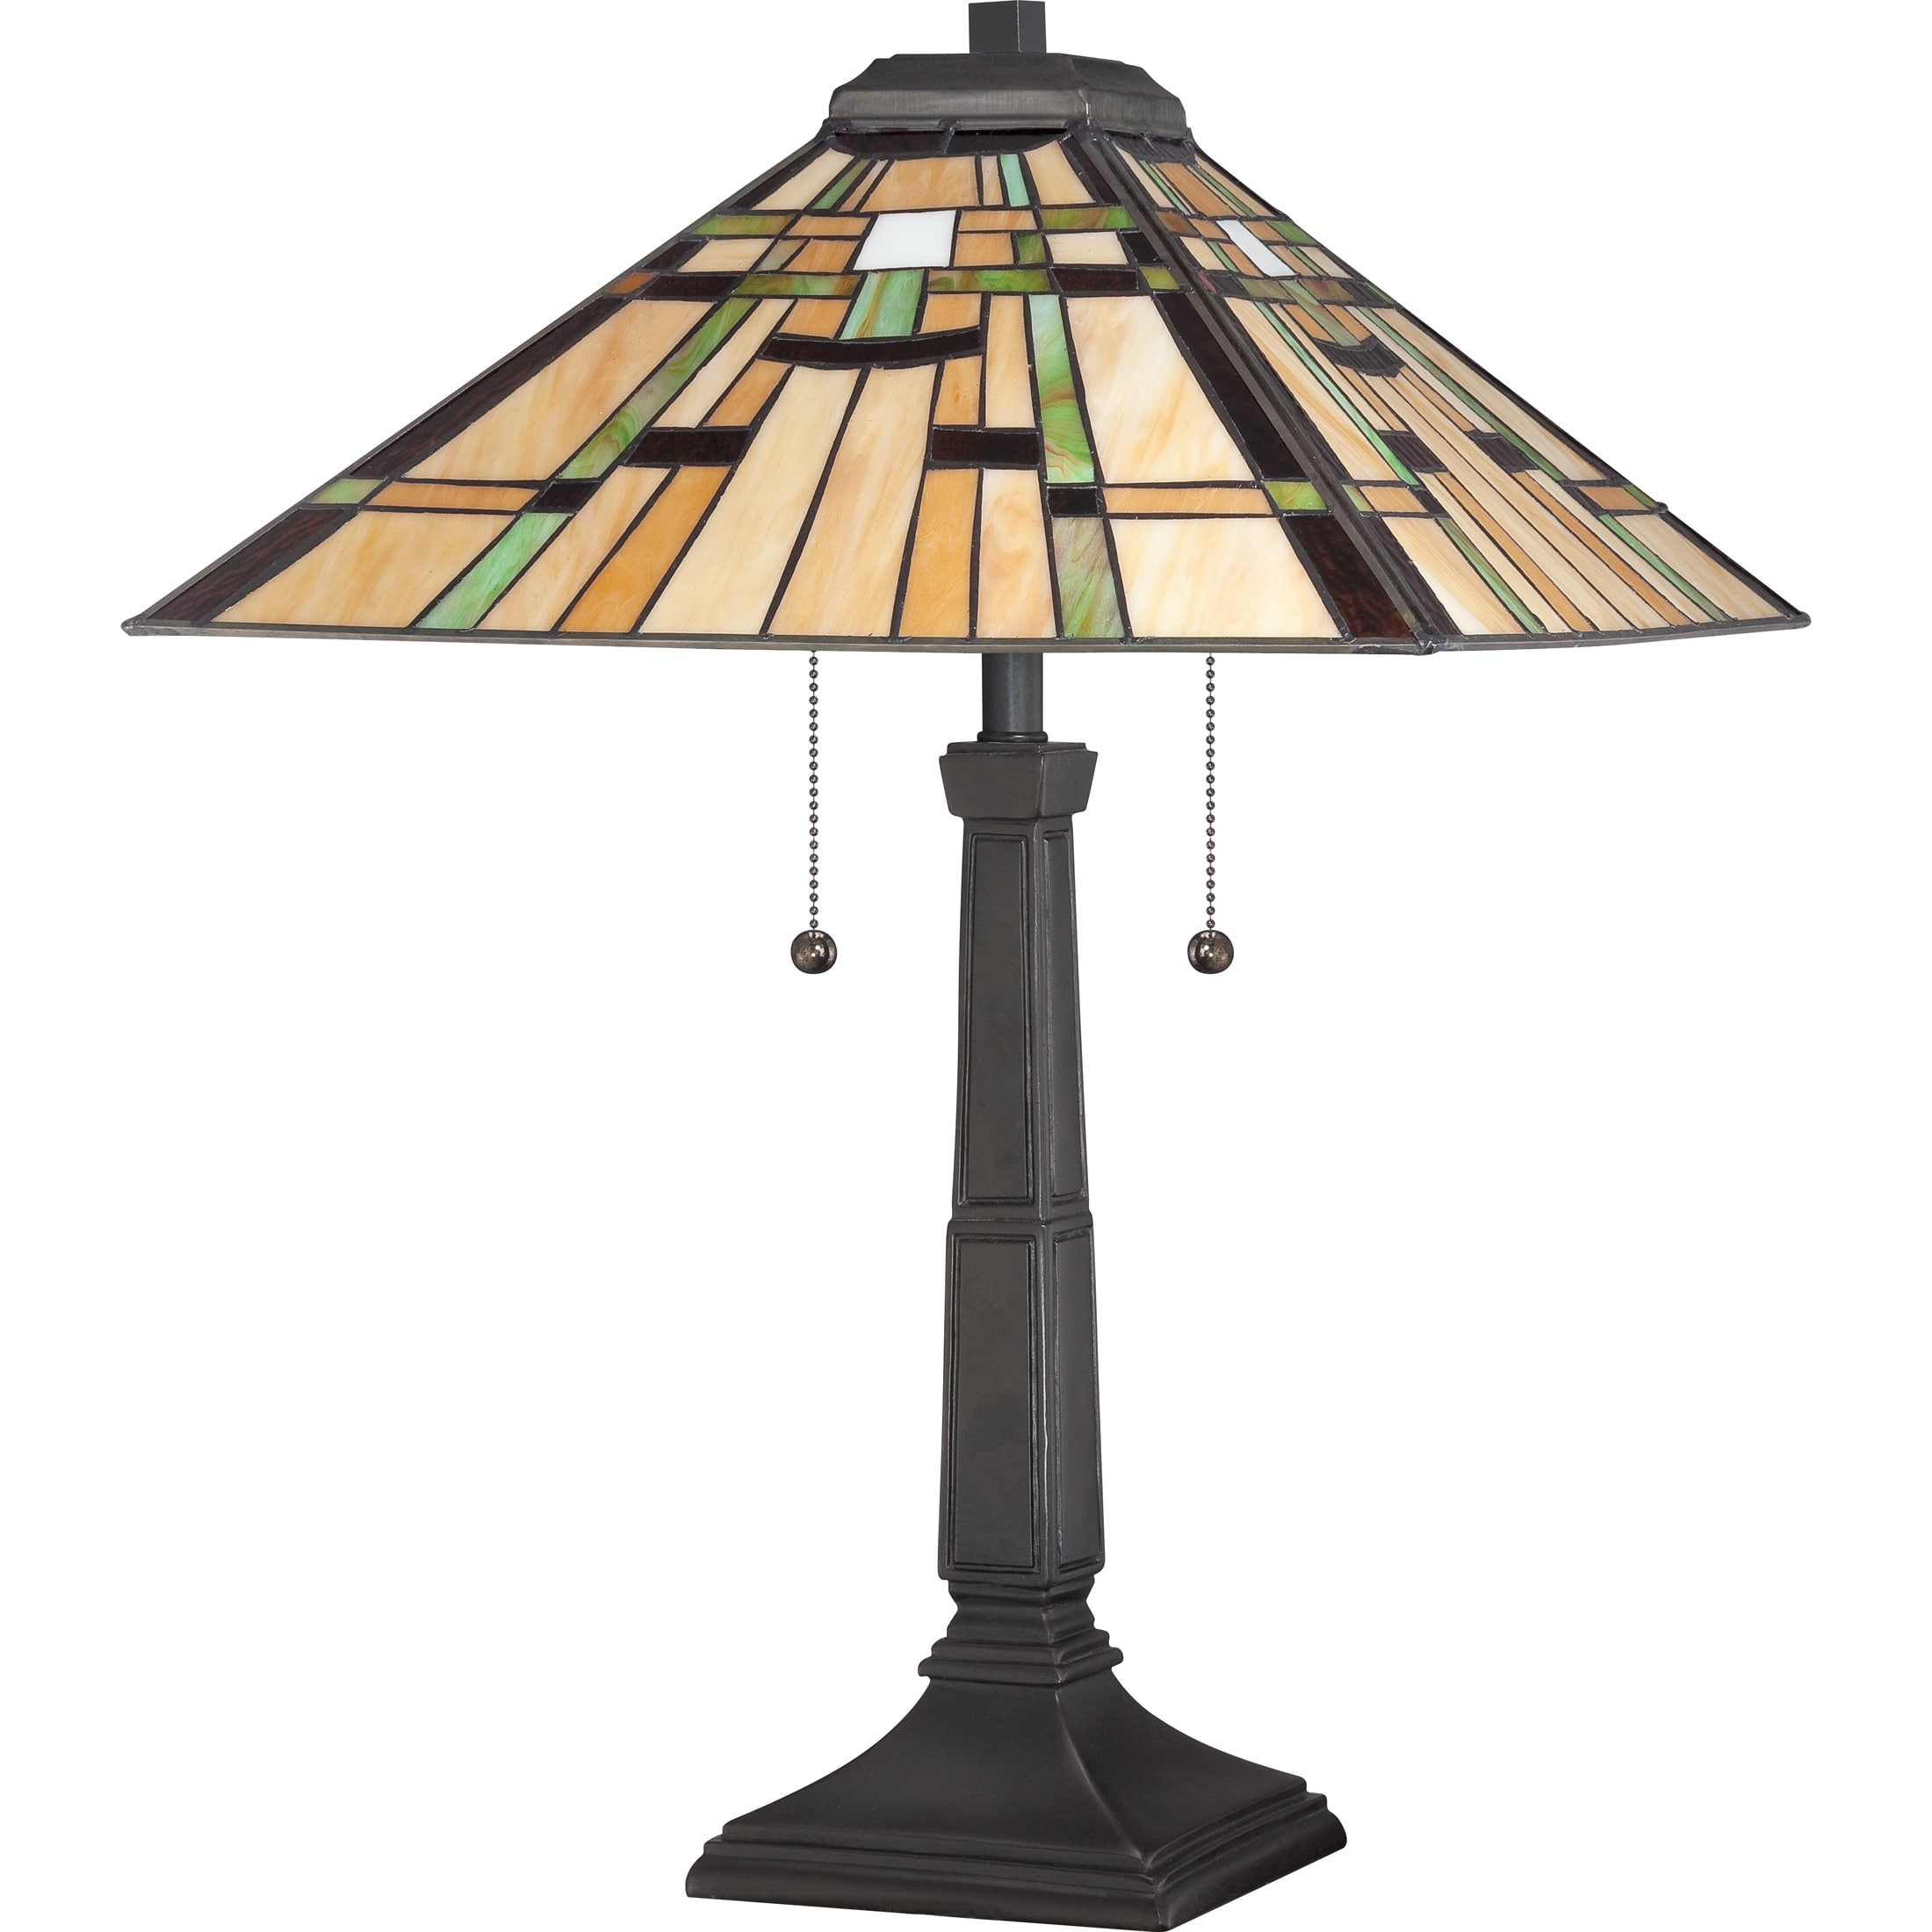 Quoizel Tf1612tvb Vintage Bronze Tiffany 2 Light 23 Tall Table Lamp With Tiffany Glass Shade Lightingshowplace Com